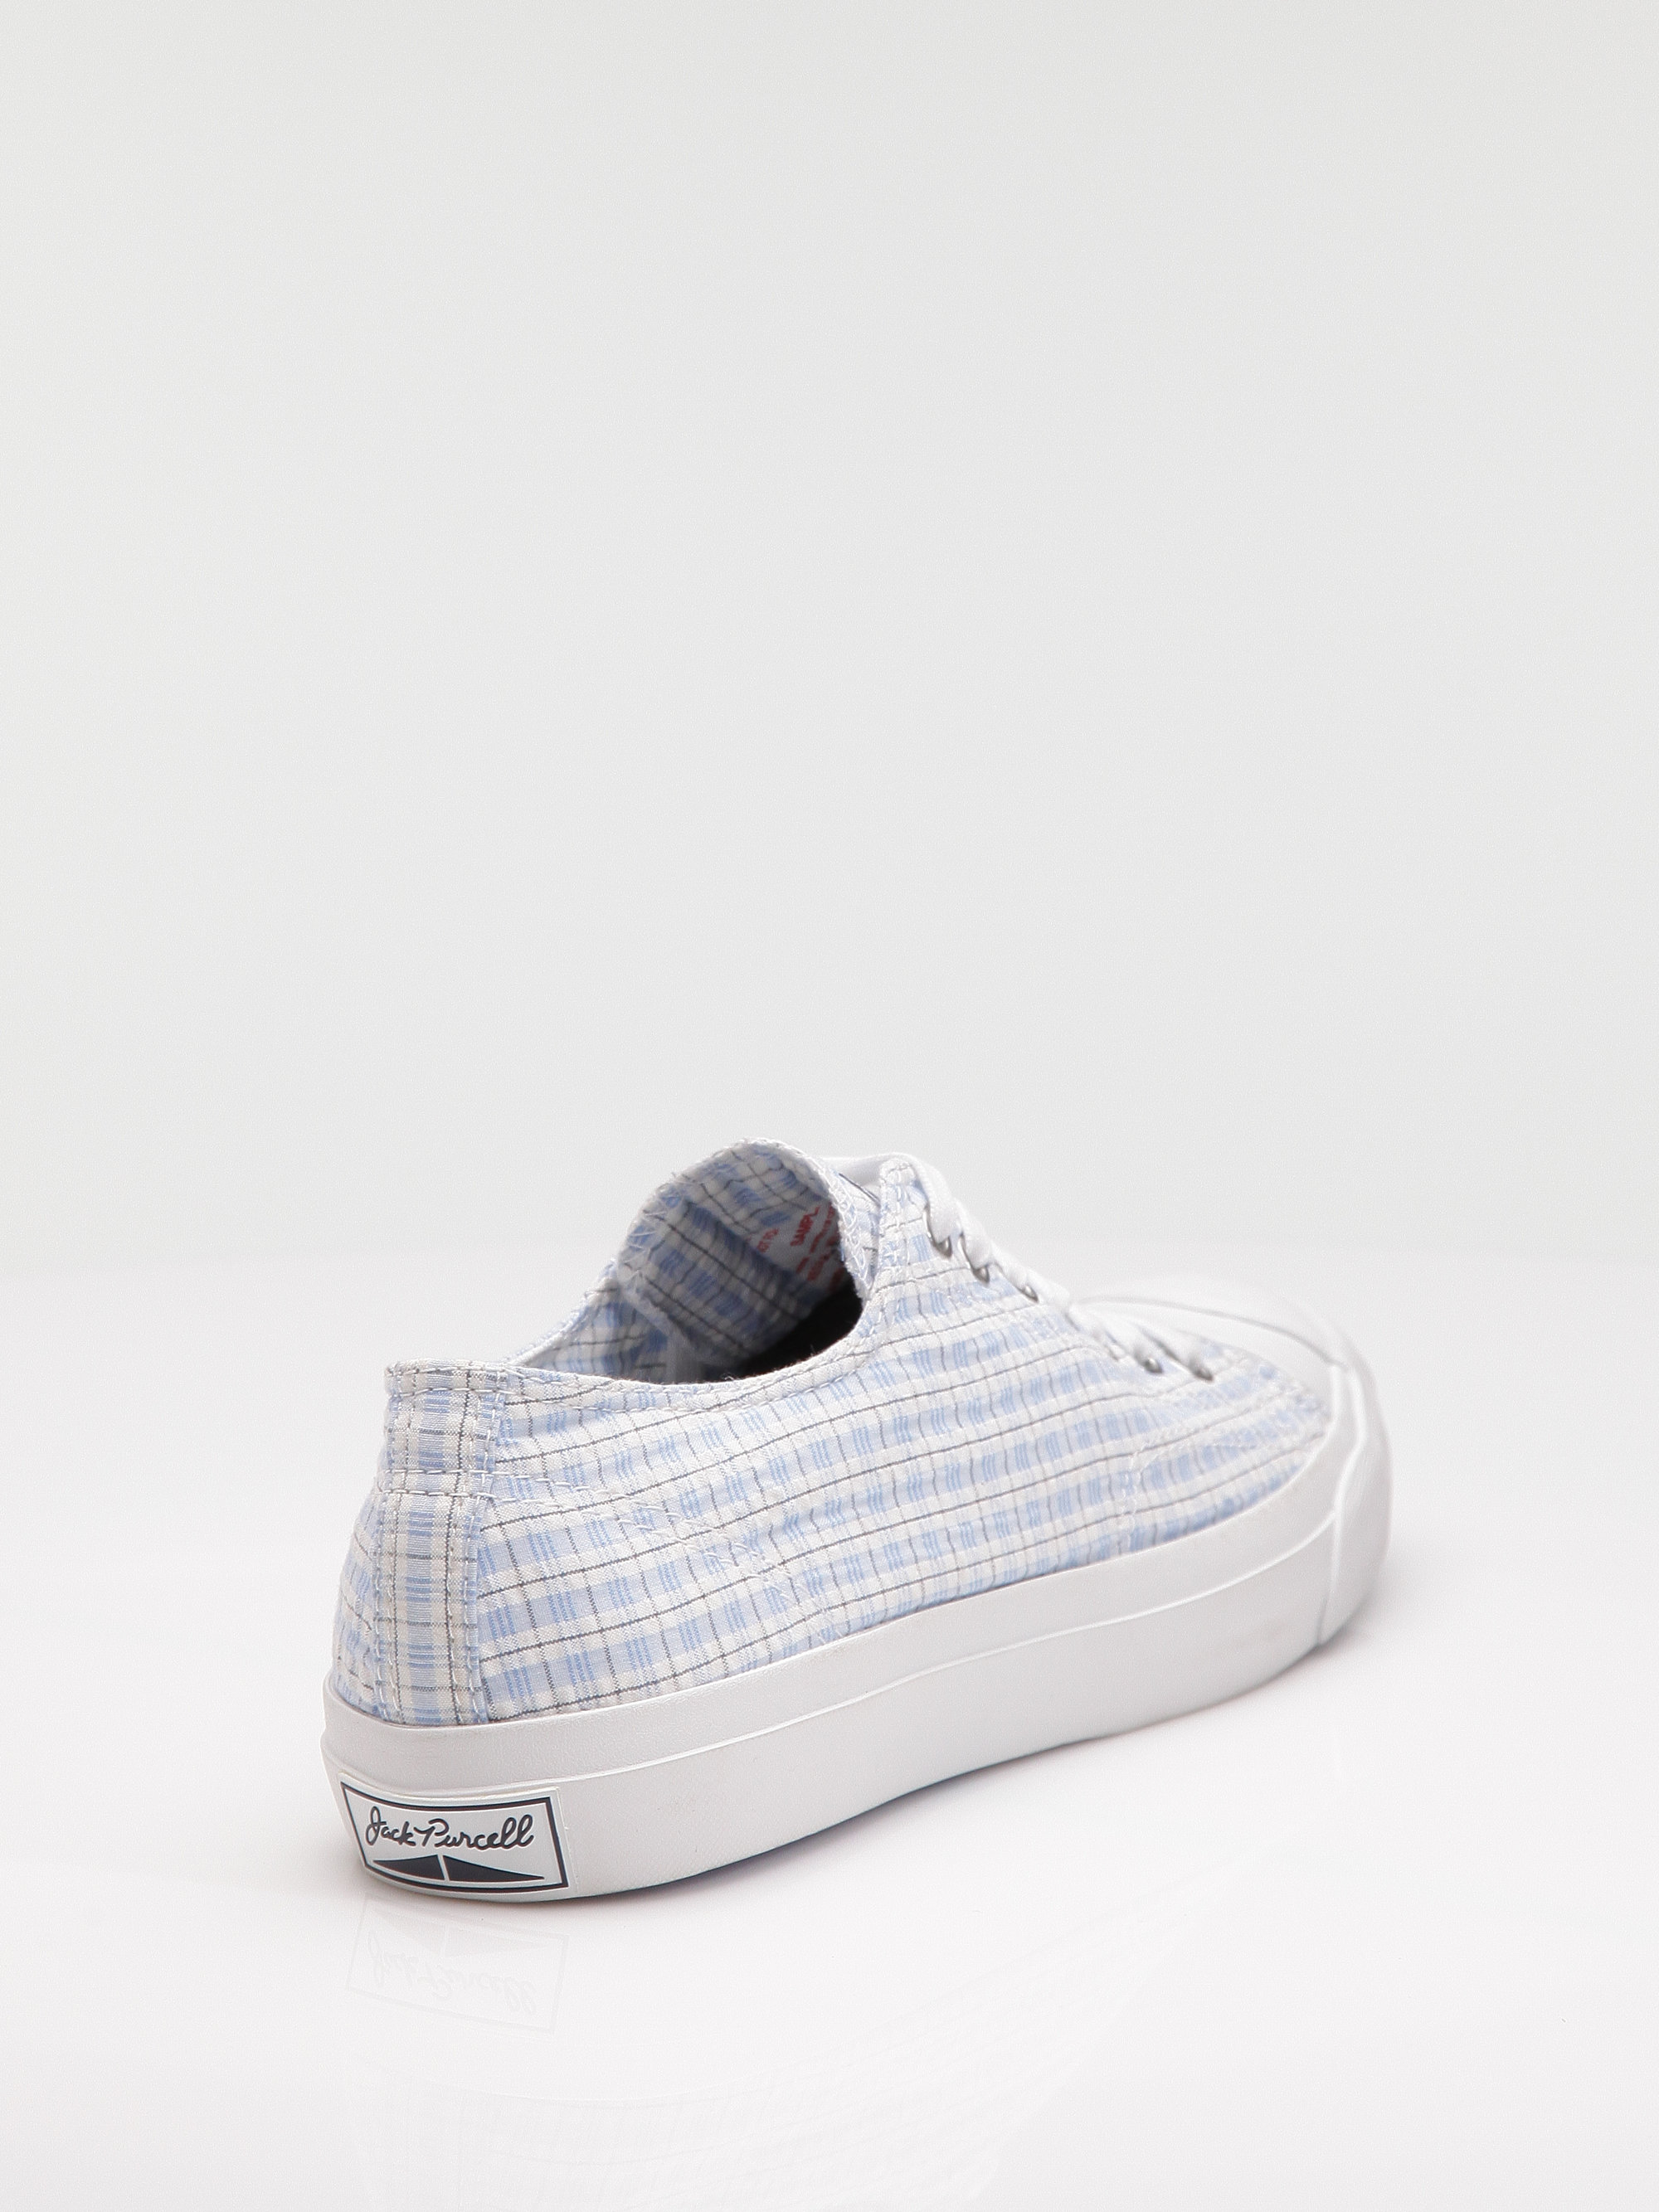 67f6564e78f3 Lyst - Converse Jack Purcell Seersucker Oxfords in White for Men